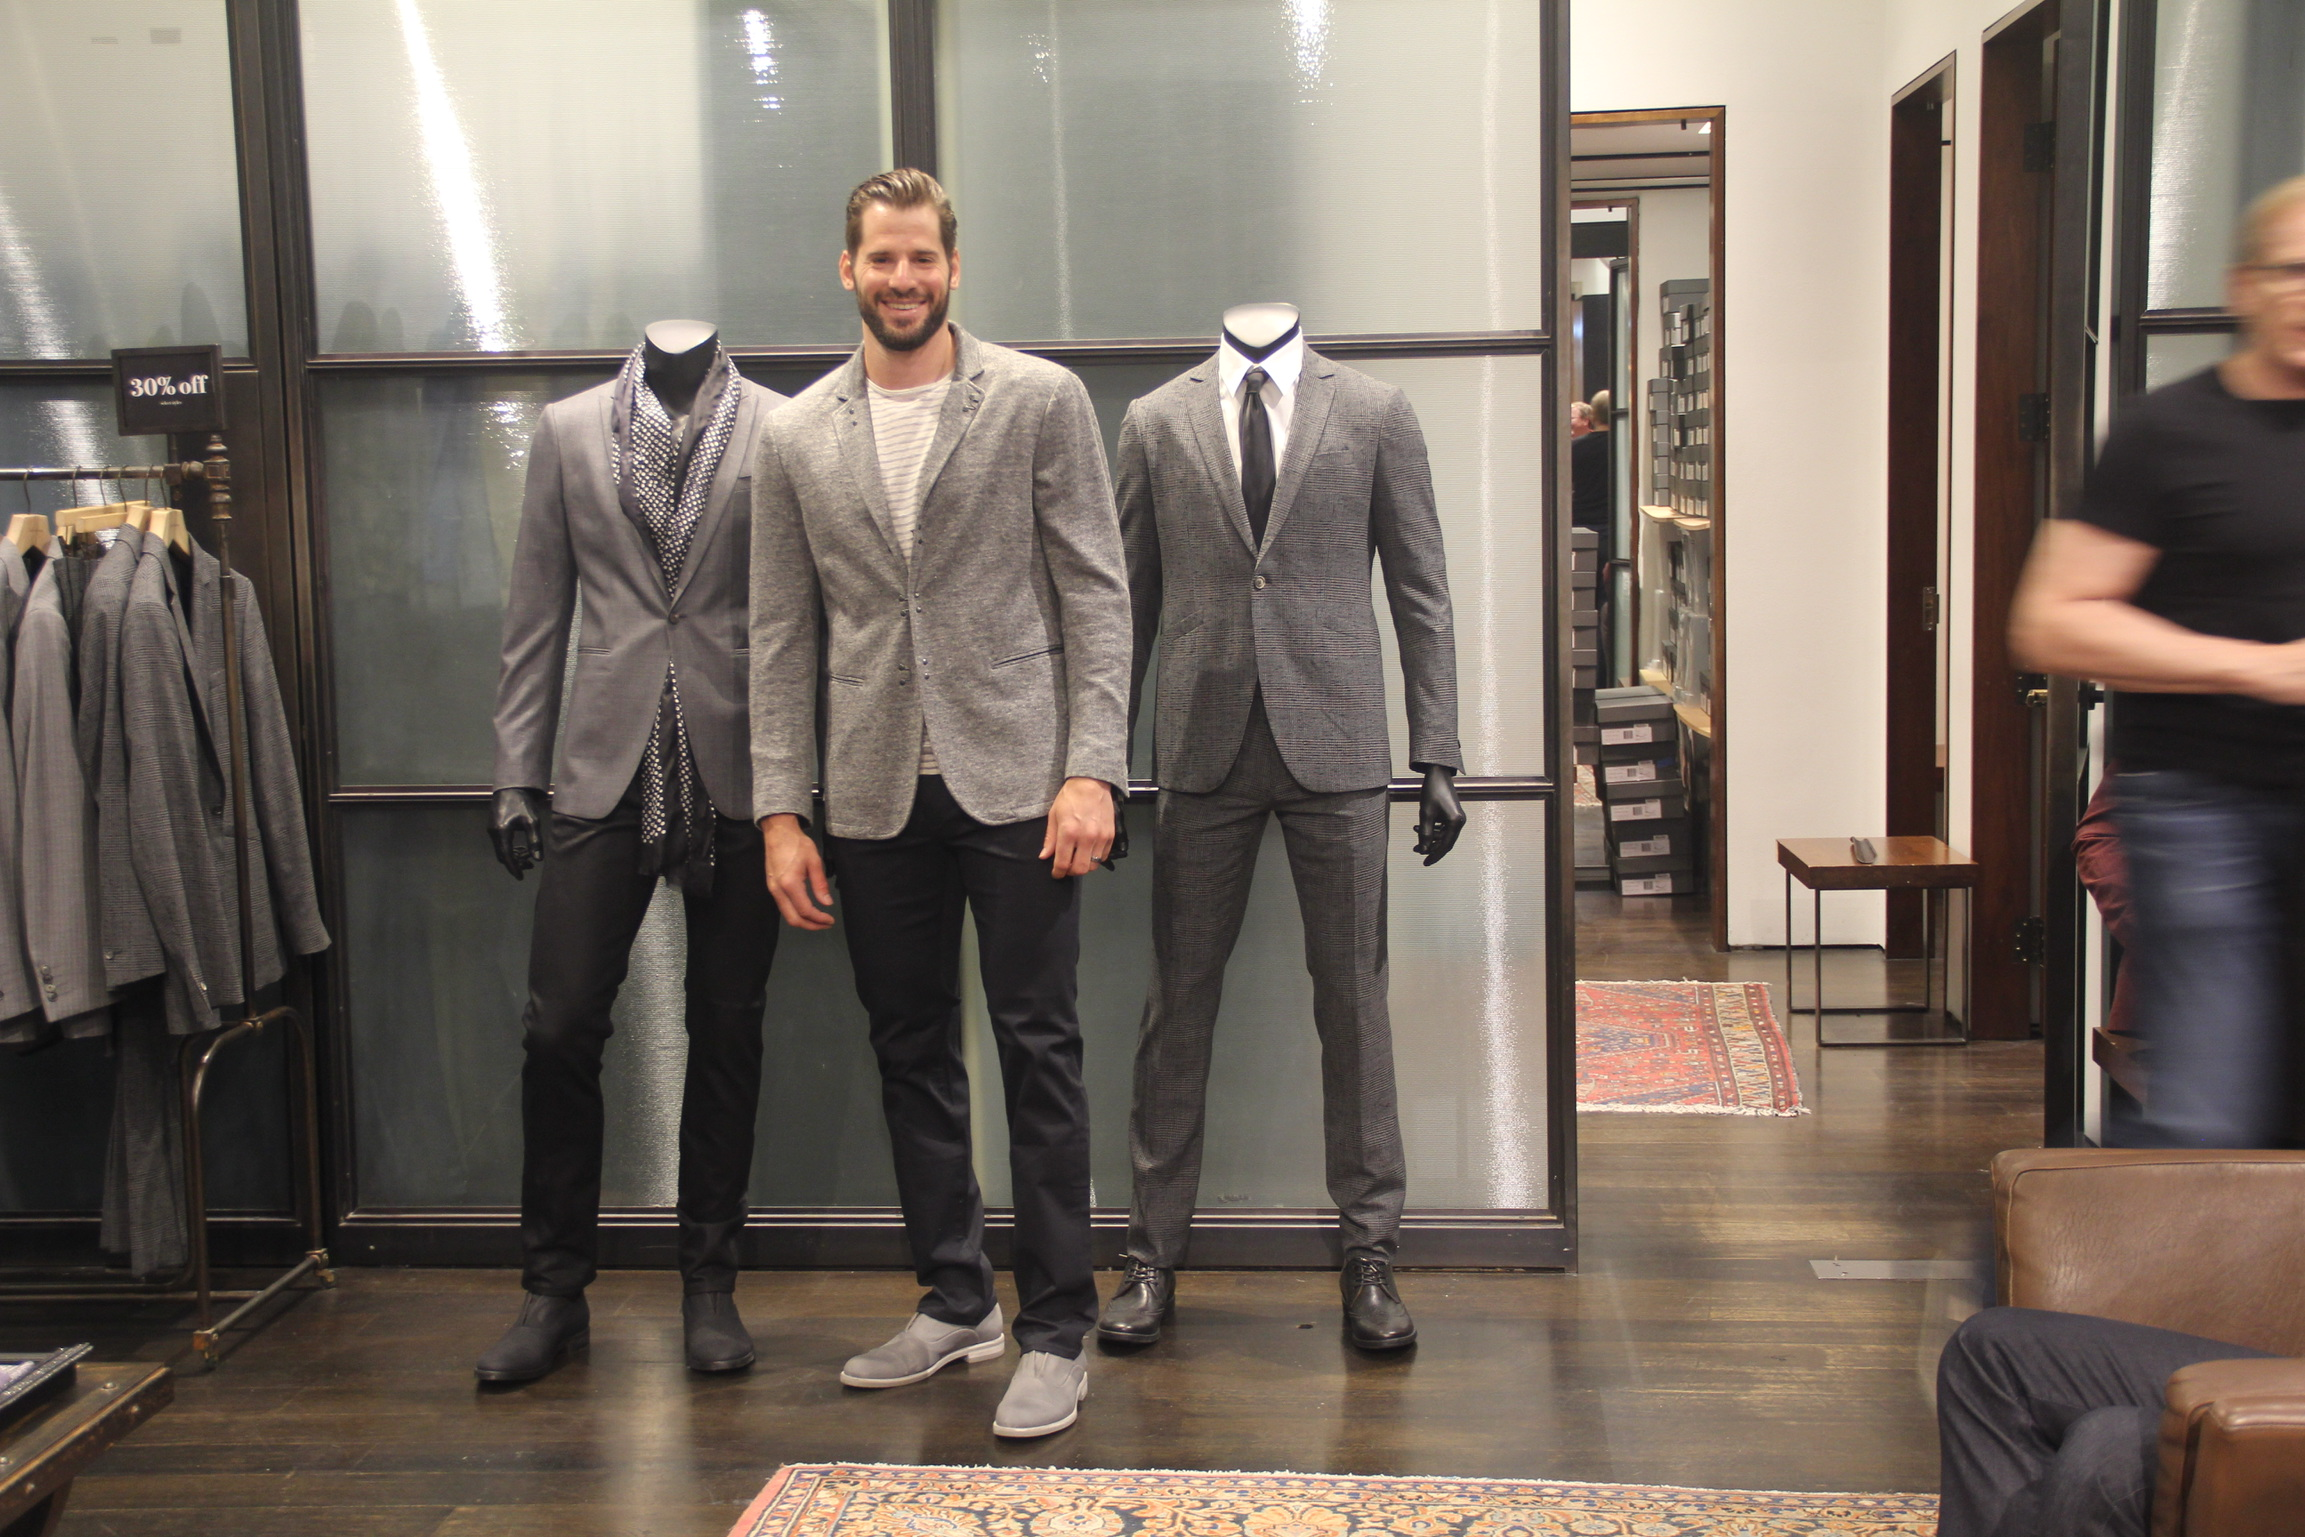 STYLE: Ryan Kesler Will Wear John Varvatos For 2016 NHL Awards